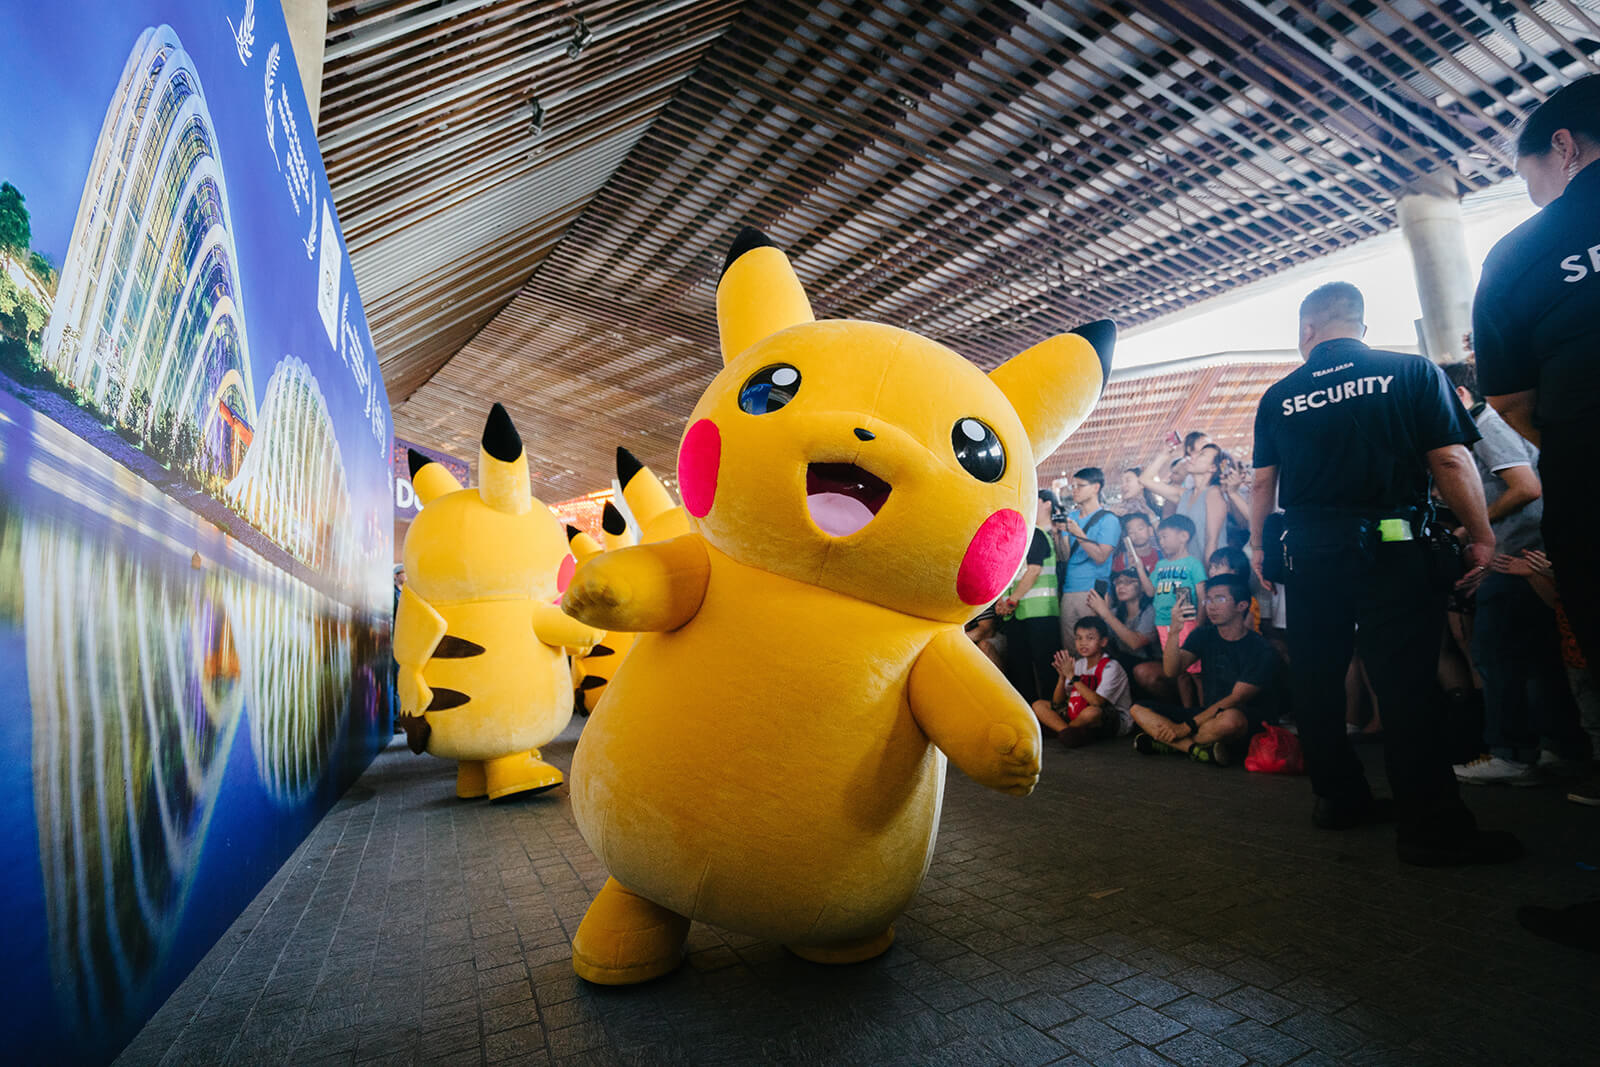 Yellow Pikachu mascot in Singapore